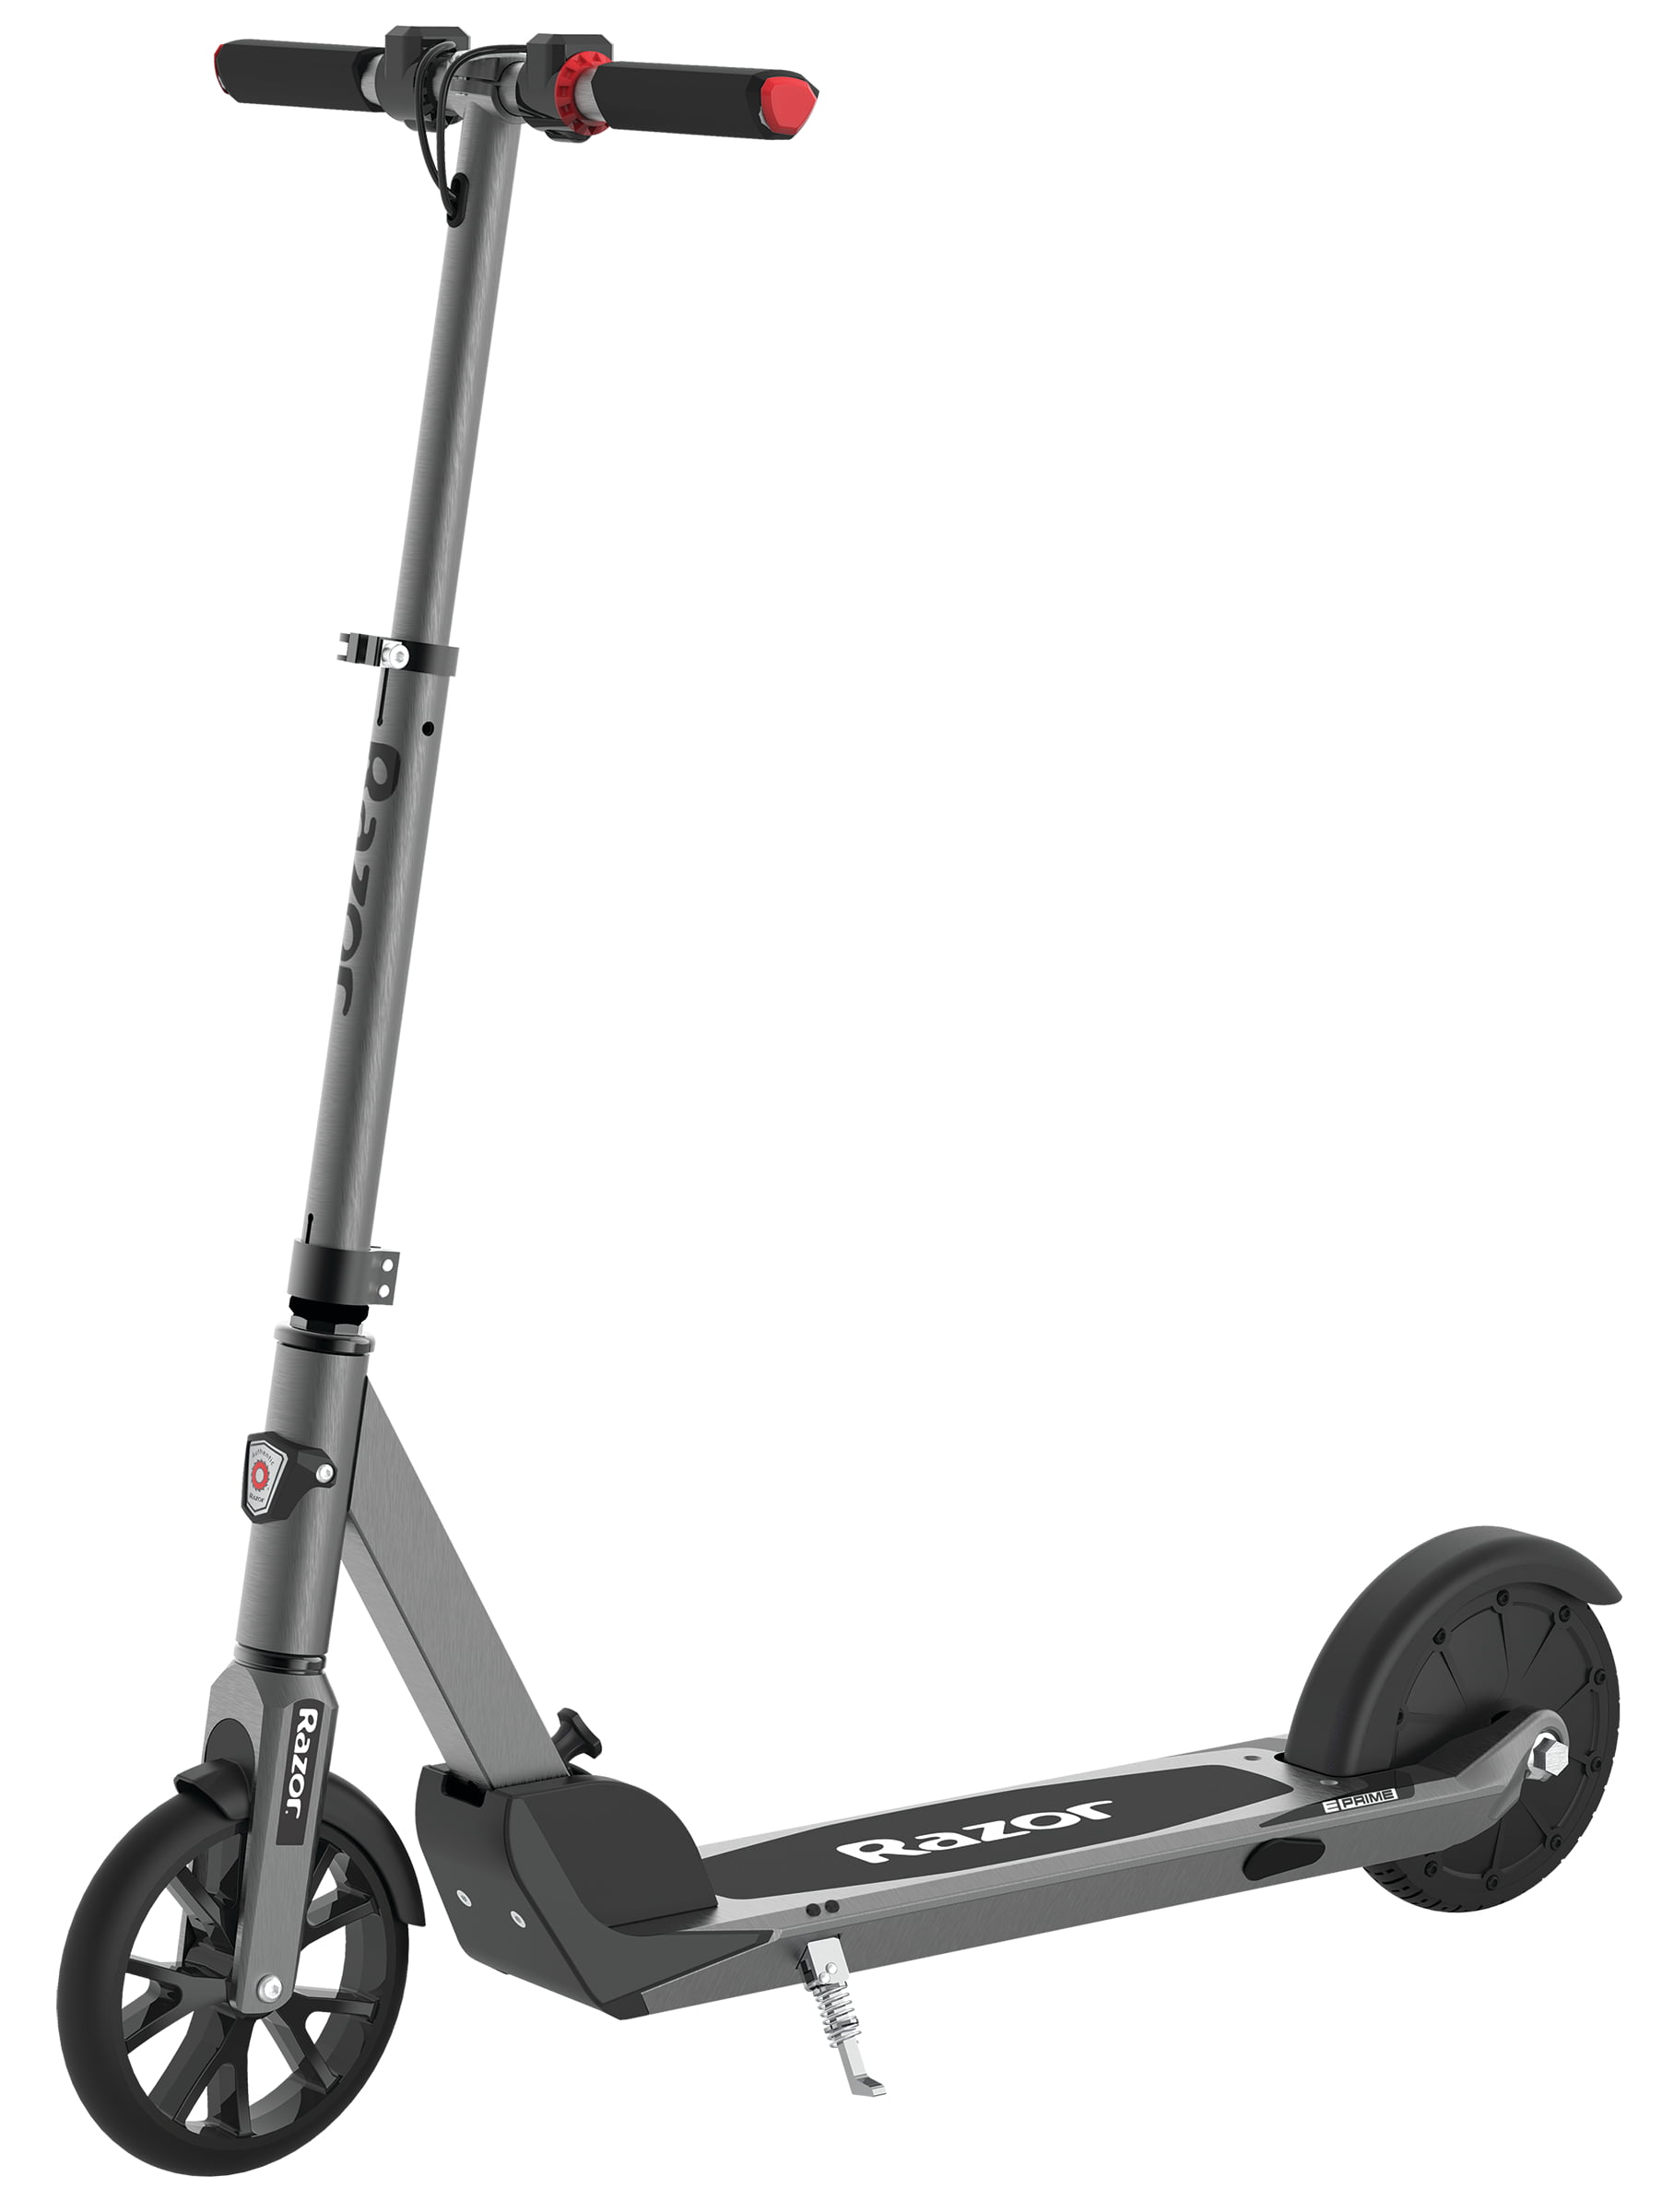 Razor E Prime Folding Adult Electric Scooter - 36V Lithium Battery, Rear Wheel Drive, Extra-Large Airless and Smooth Tires, and Speeds up to 15 mph